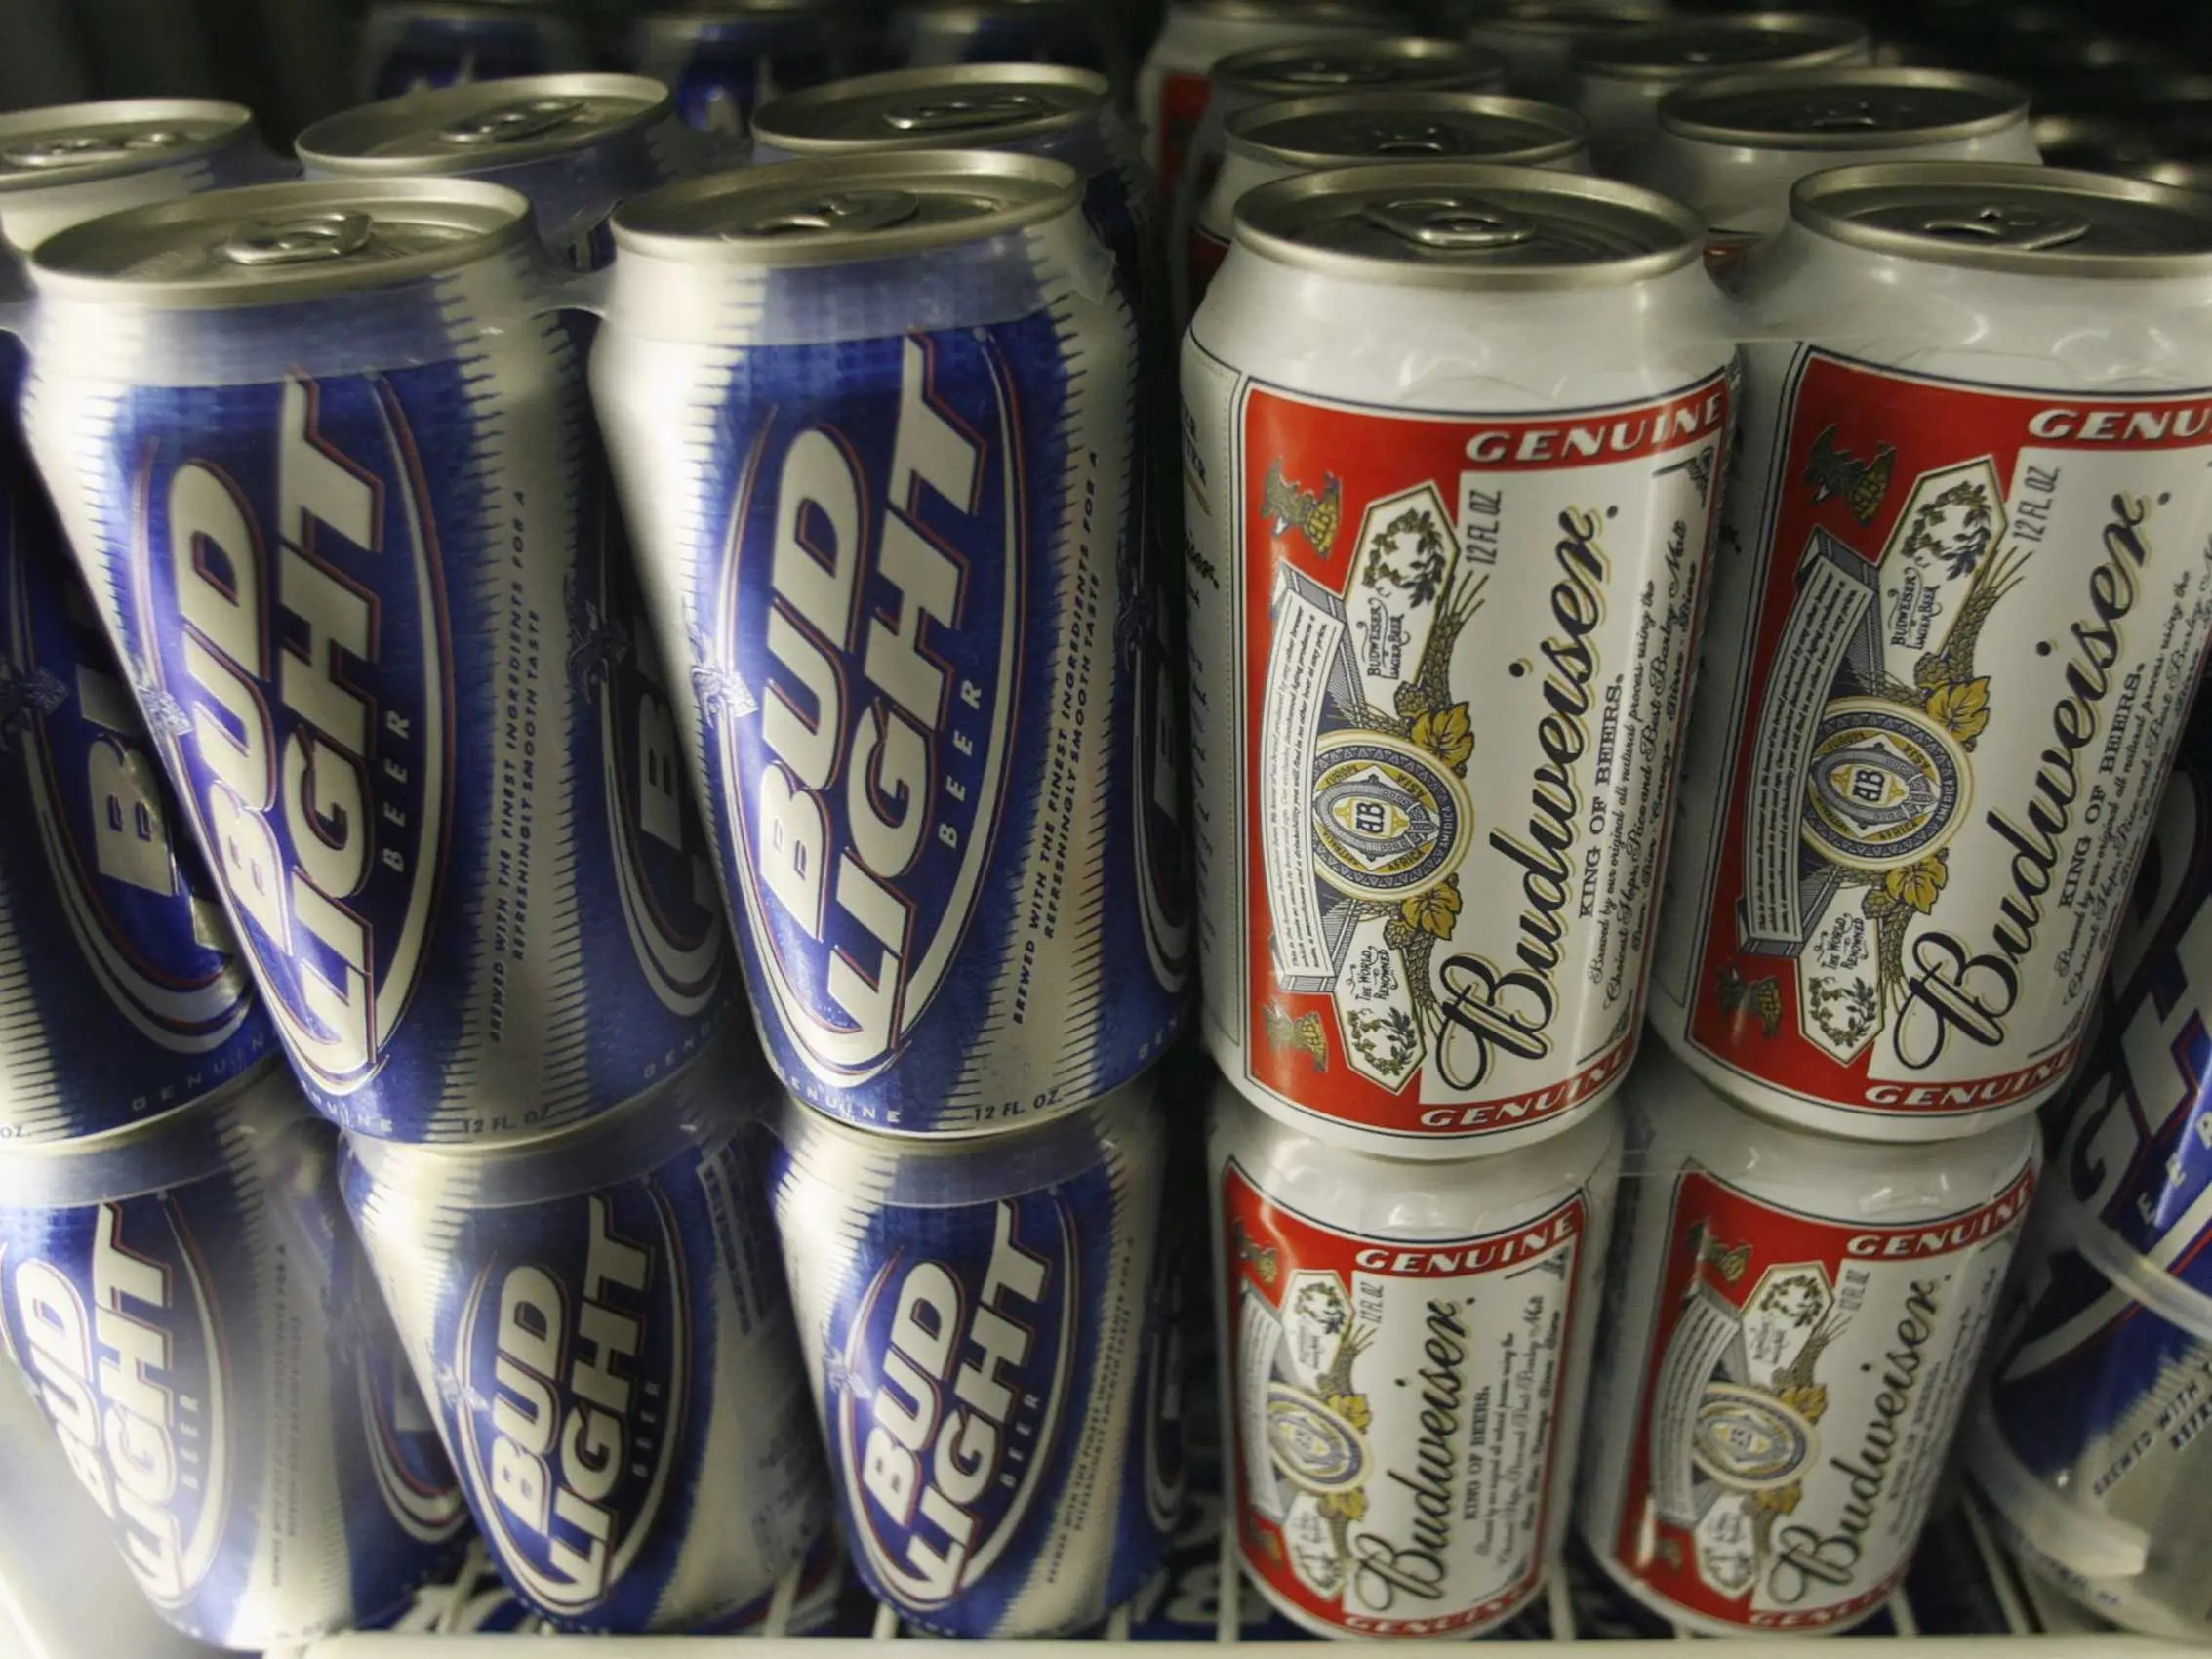 Bud Light Just Made A Drastic Change Business Insider